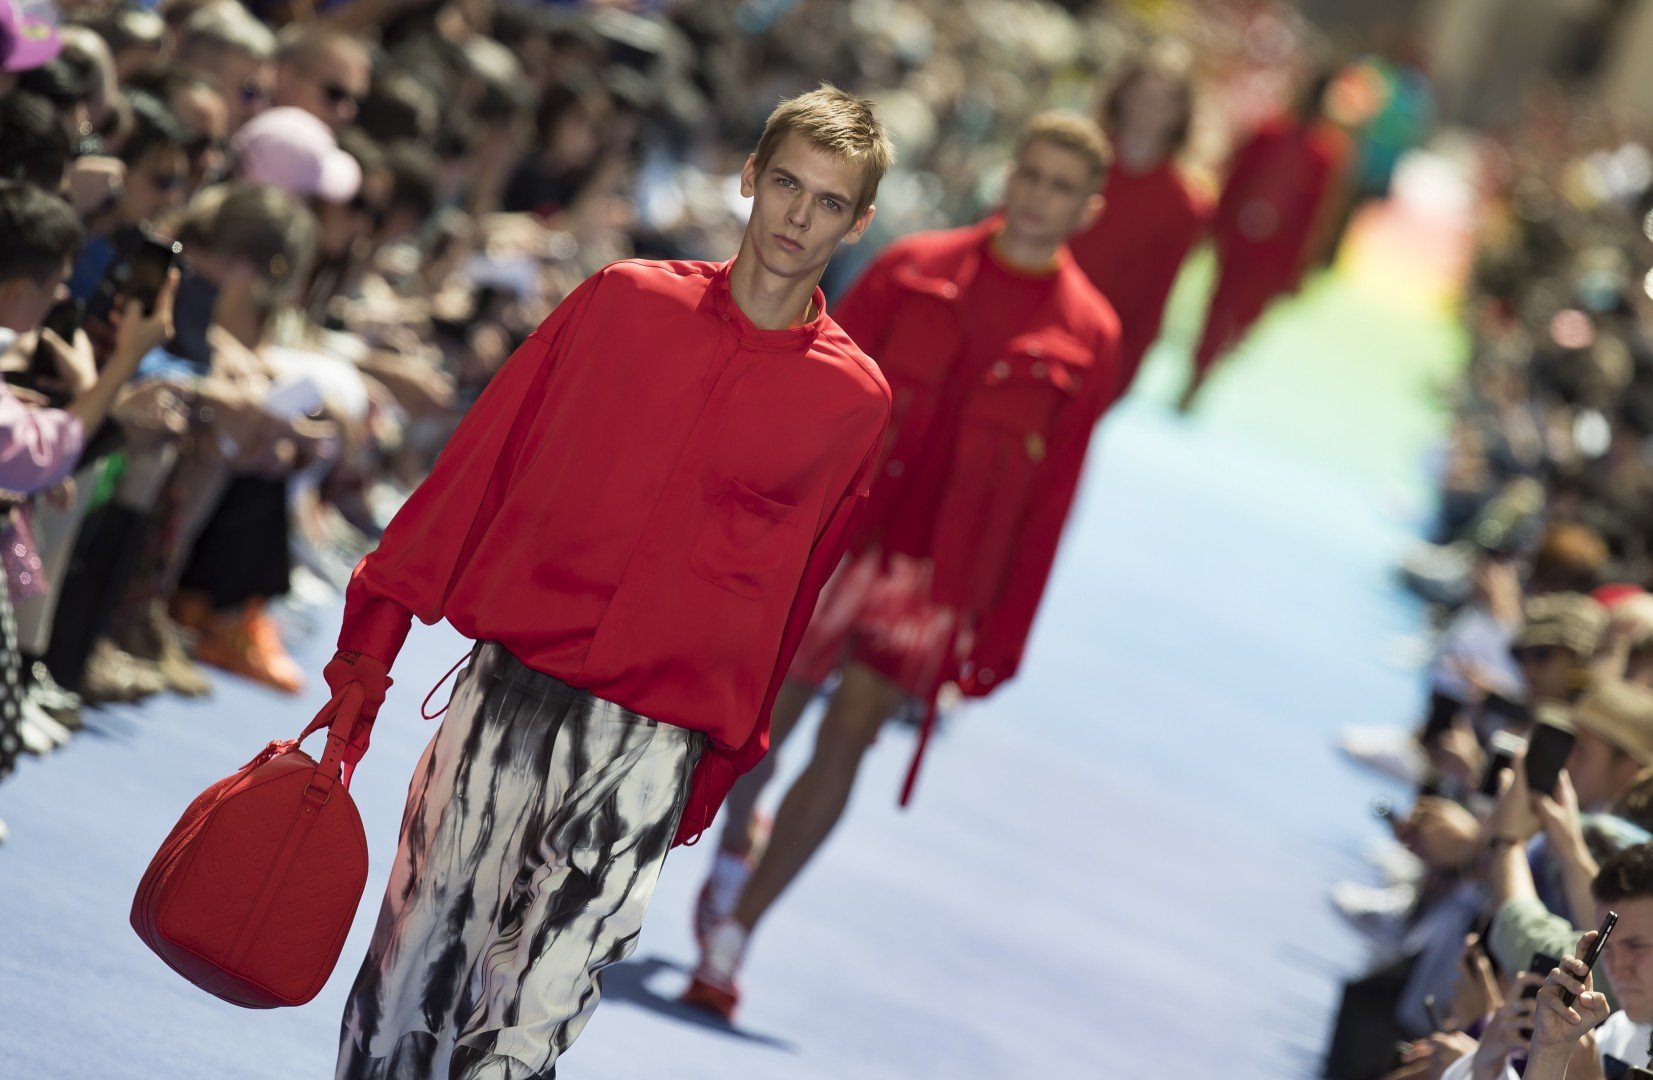 ee69f7a29555 Paris Men s Fashion Show  tearful Virgil Abloh catches the eye with  colourful Louis Vuitton debut